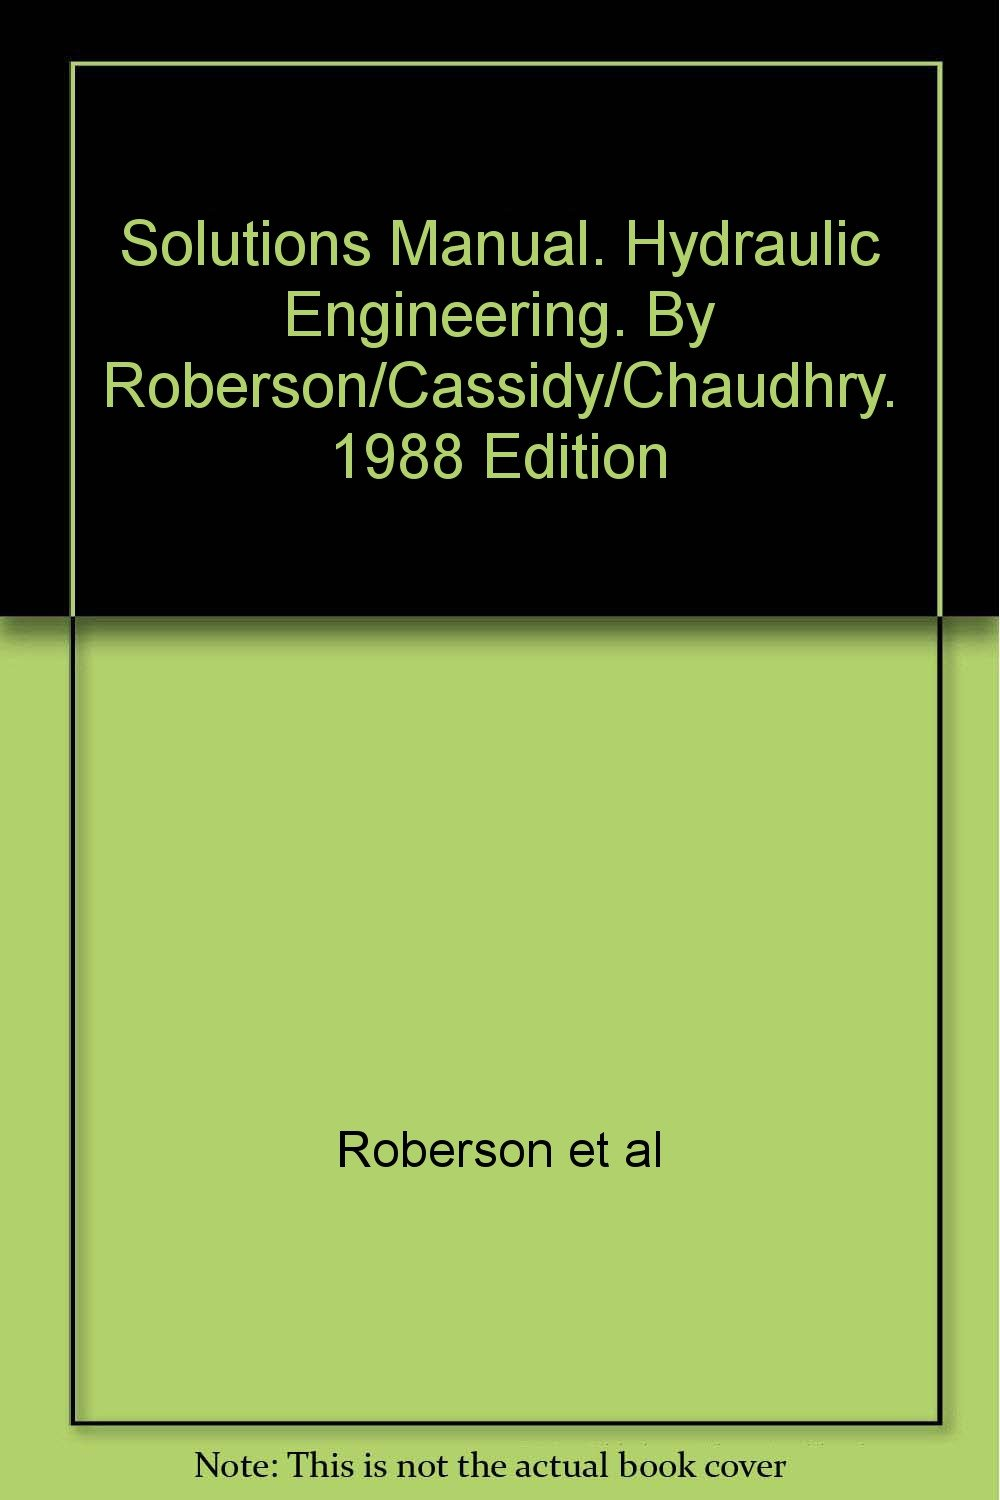 Solutions Manual. Hydraulic Engineering. By Roberson/Cassidy/Chaudhry. 1988  Edition: Roberson et al: Amazon.com: Books